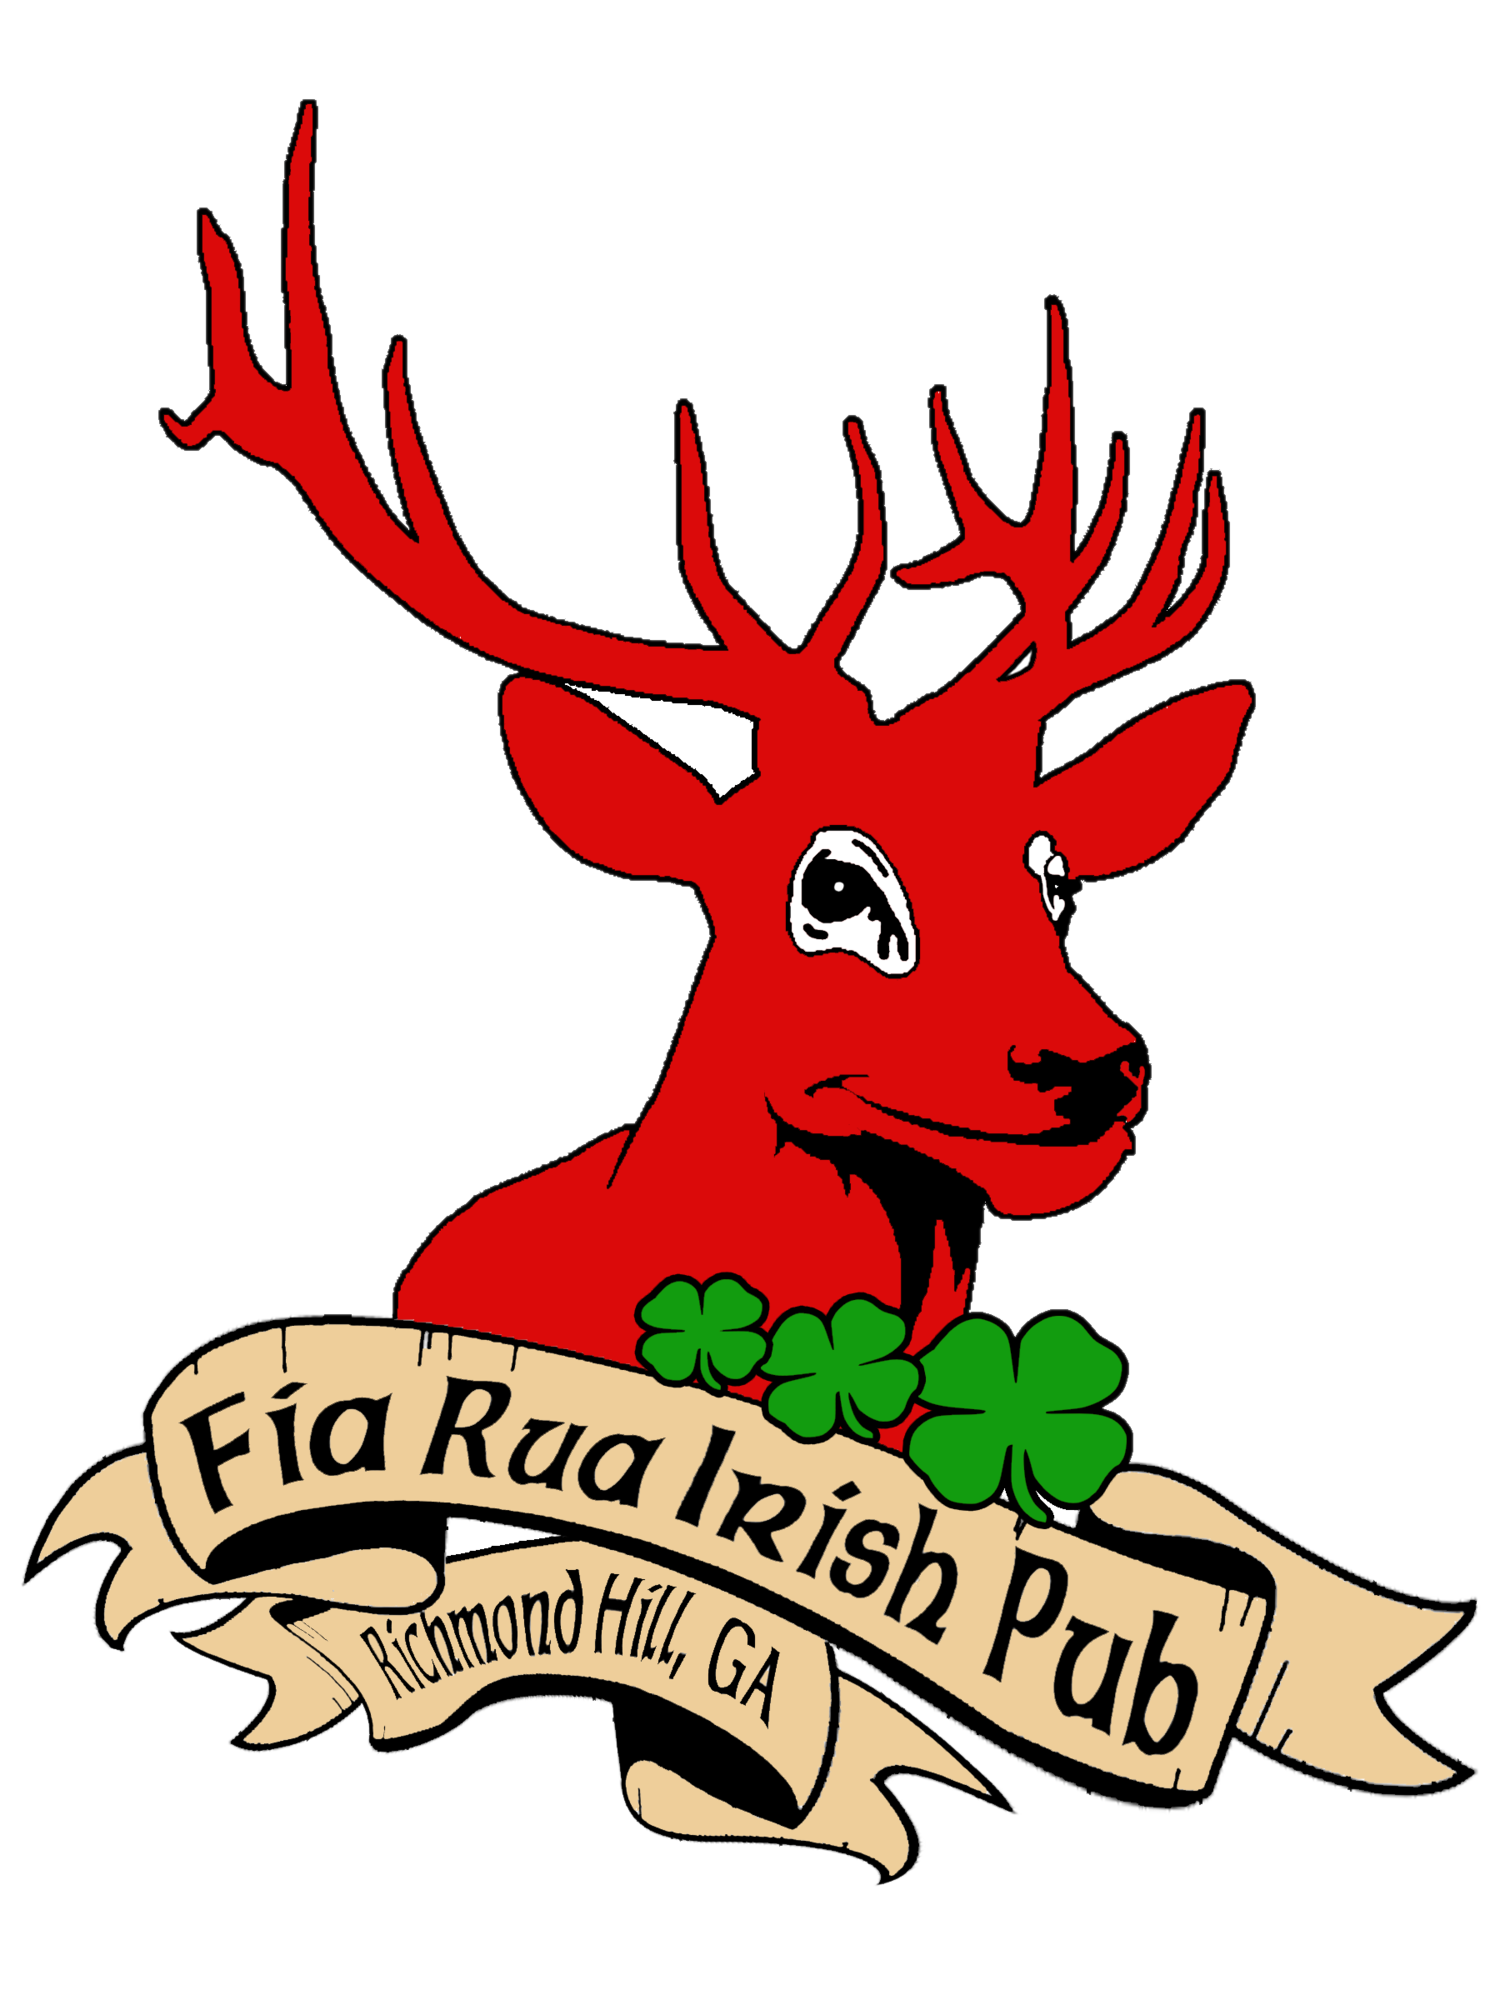 Fia Rua Irish Public House